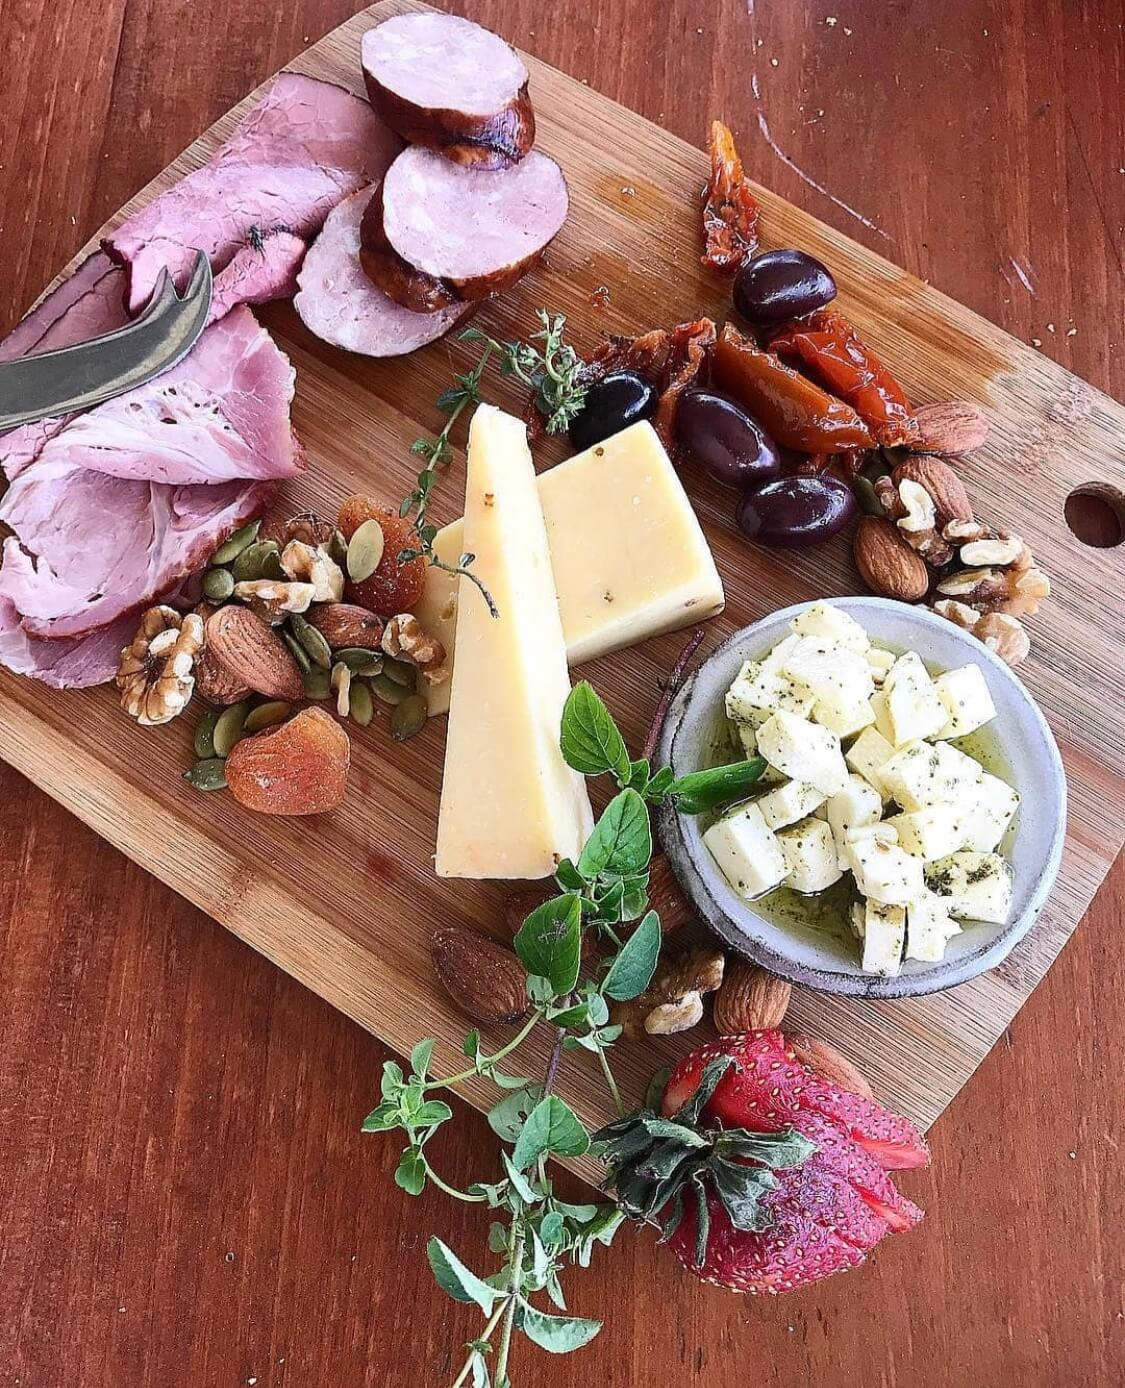 #GoHyperlocal Guide to Gippsland - Curated by Travis for your next Australian getaway. Featuring Bassine Specialty Cheeses.